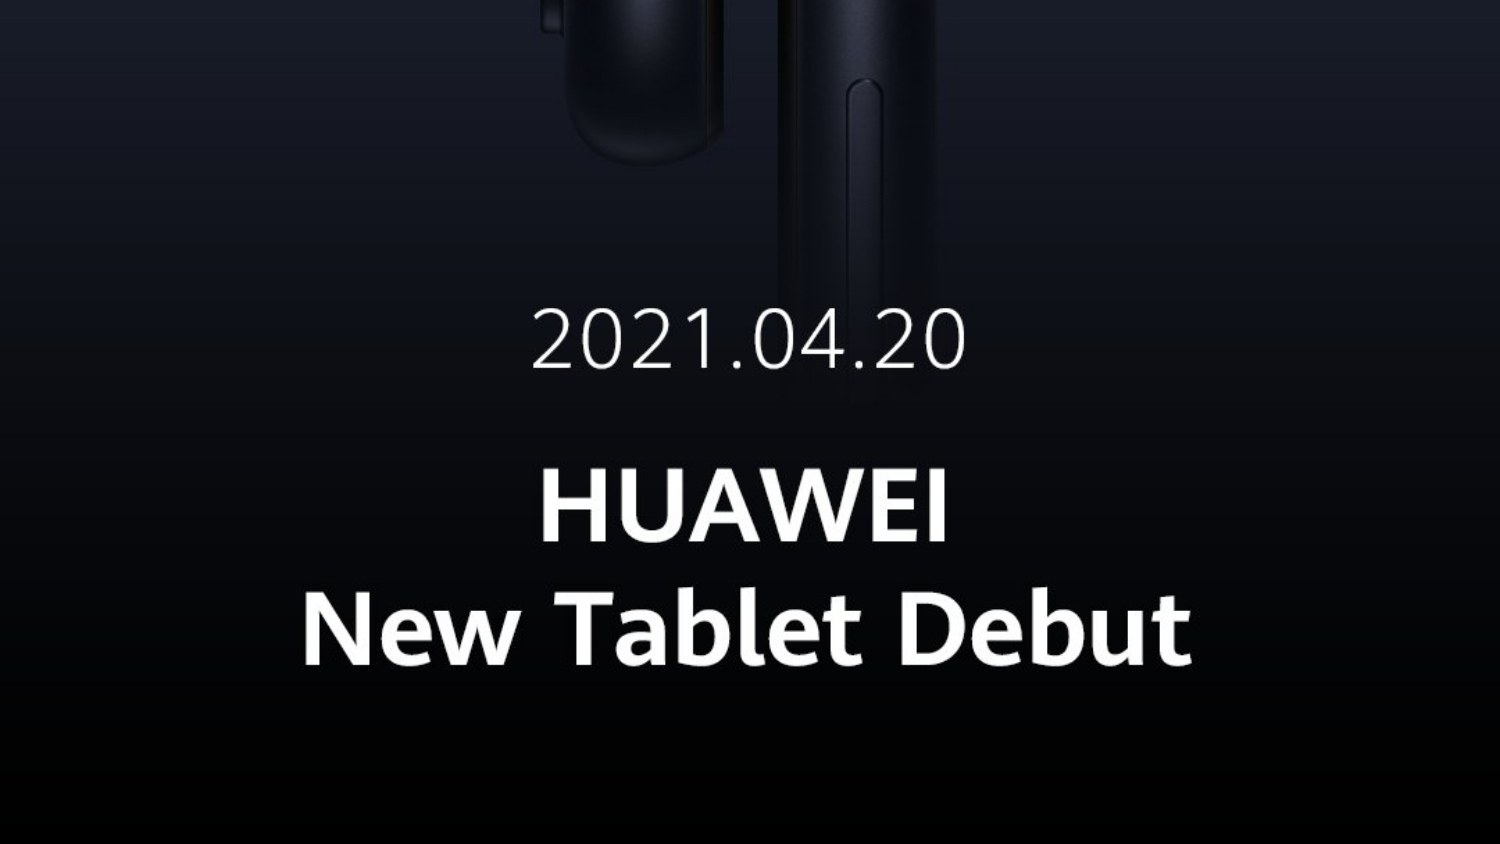 HUAWEI New Tablet